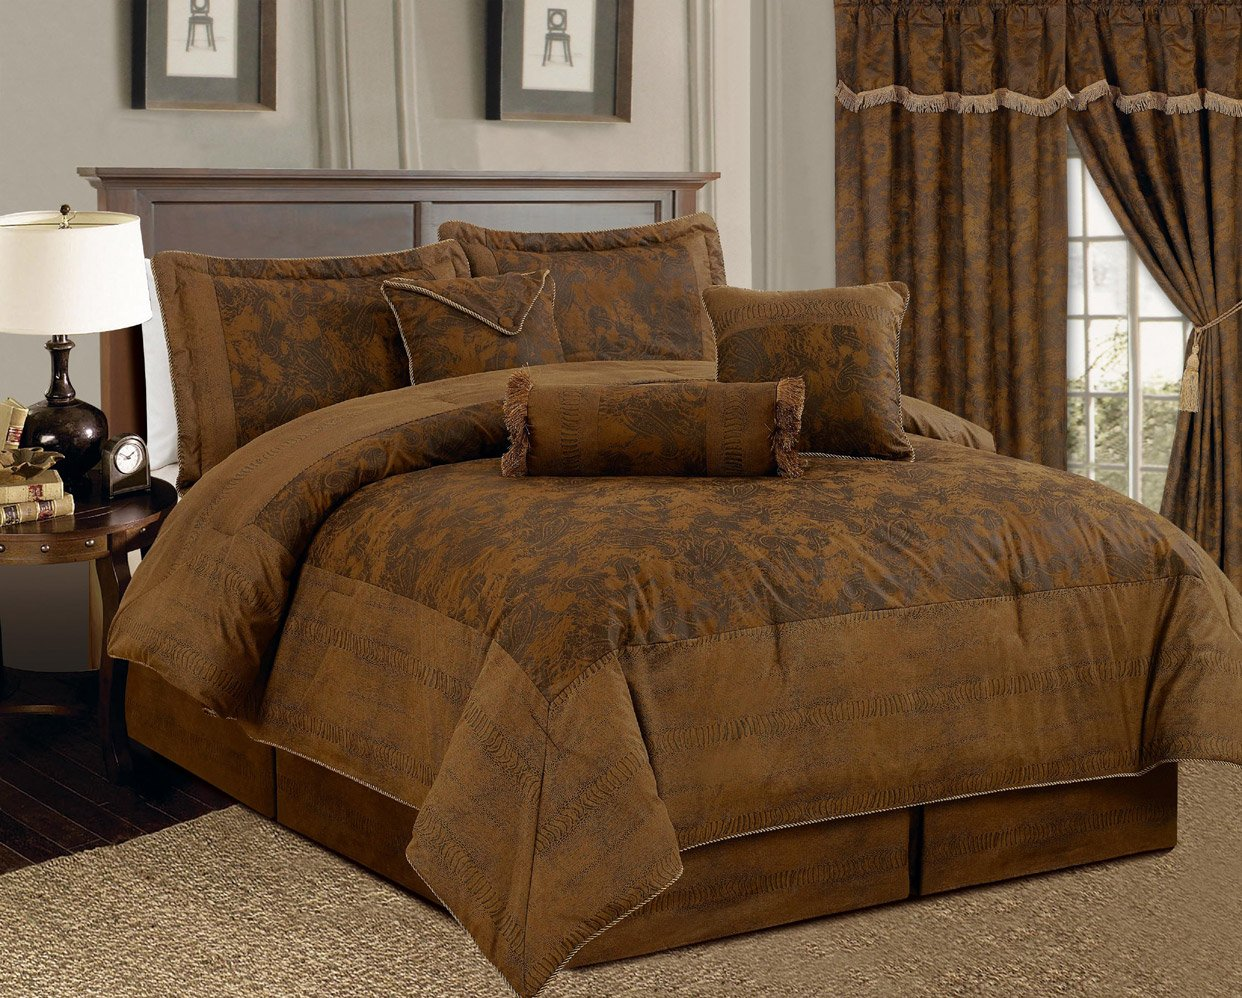 suede comforter sets king Amazon.com: 7 Piece Dark Camel Brown Lavish Oversize (104